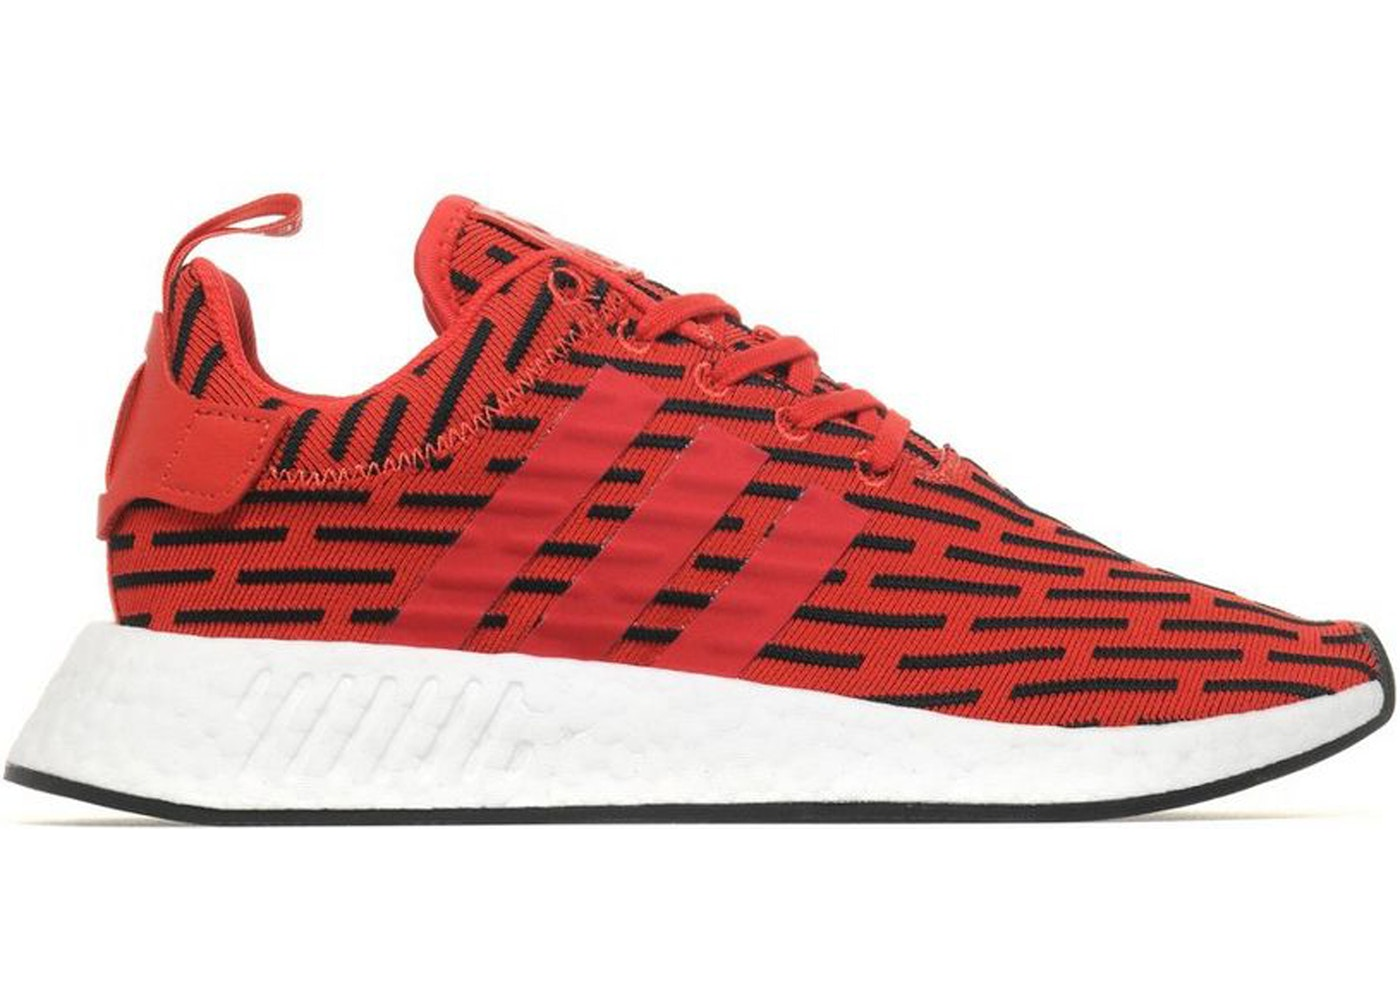 new photos 2721f 01ab4 adidas NMD R2 JD Sports Red Black